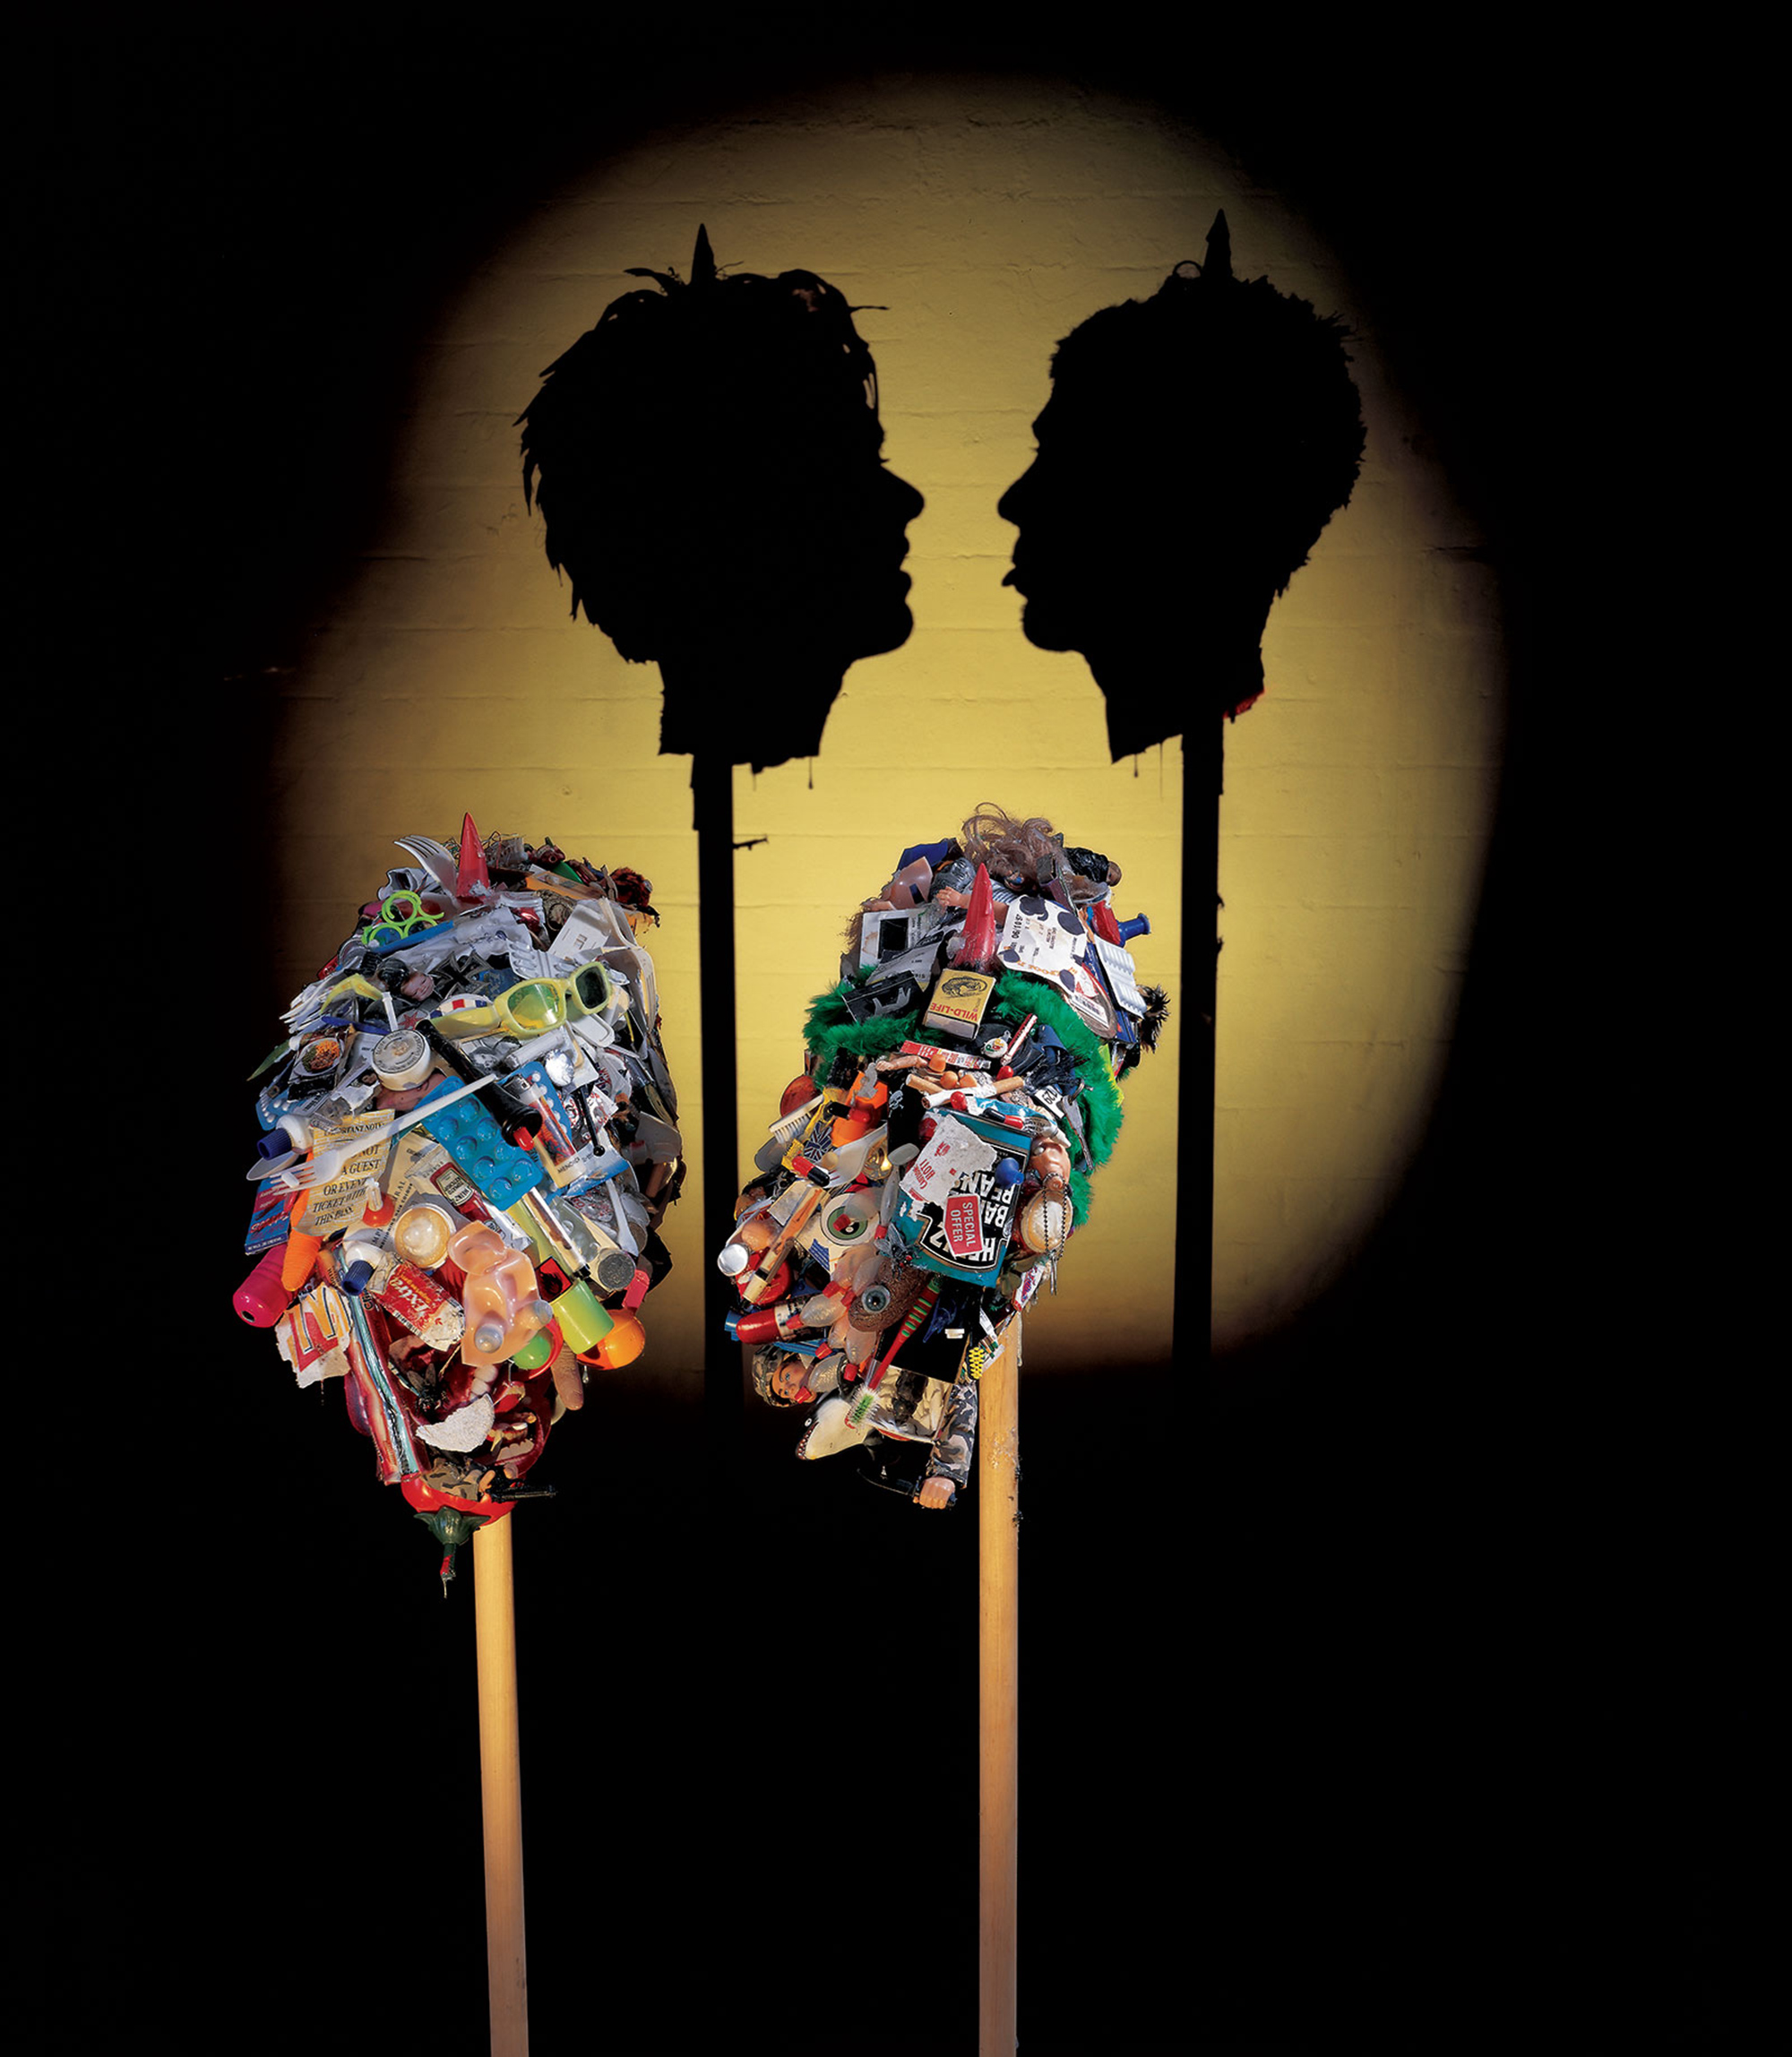 Shadow Sculptures Made of Trash by Tim Noble and Sue Webster